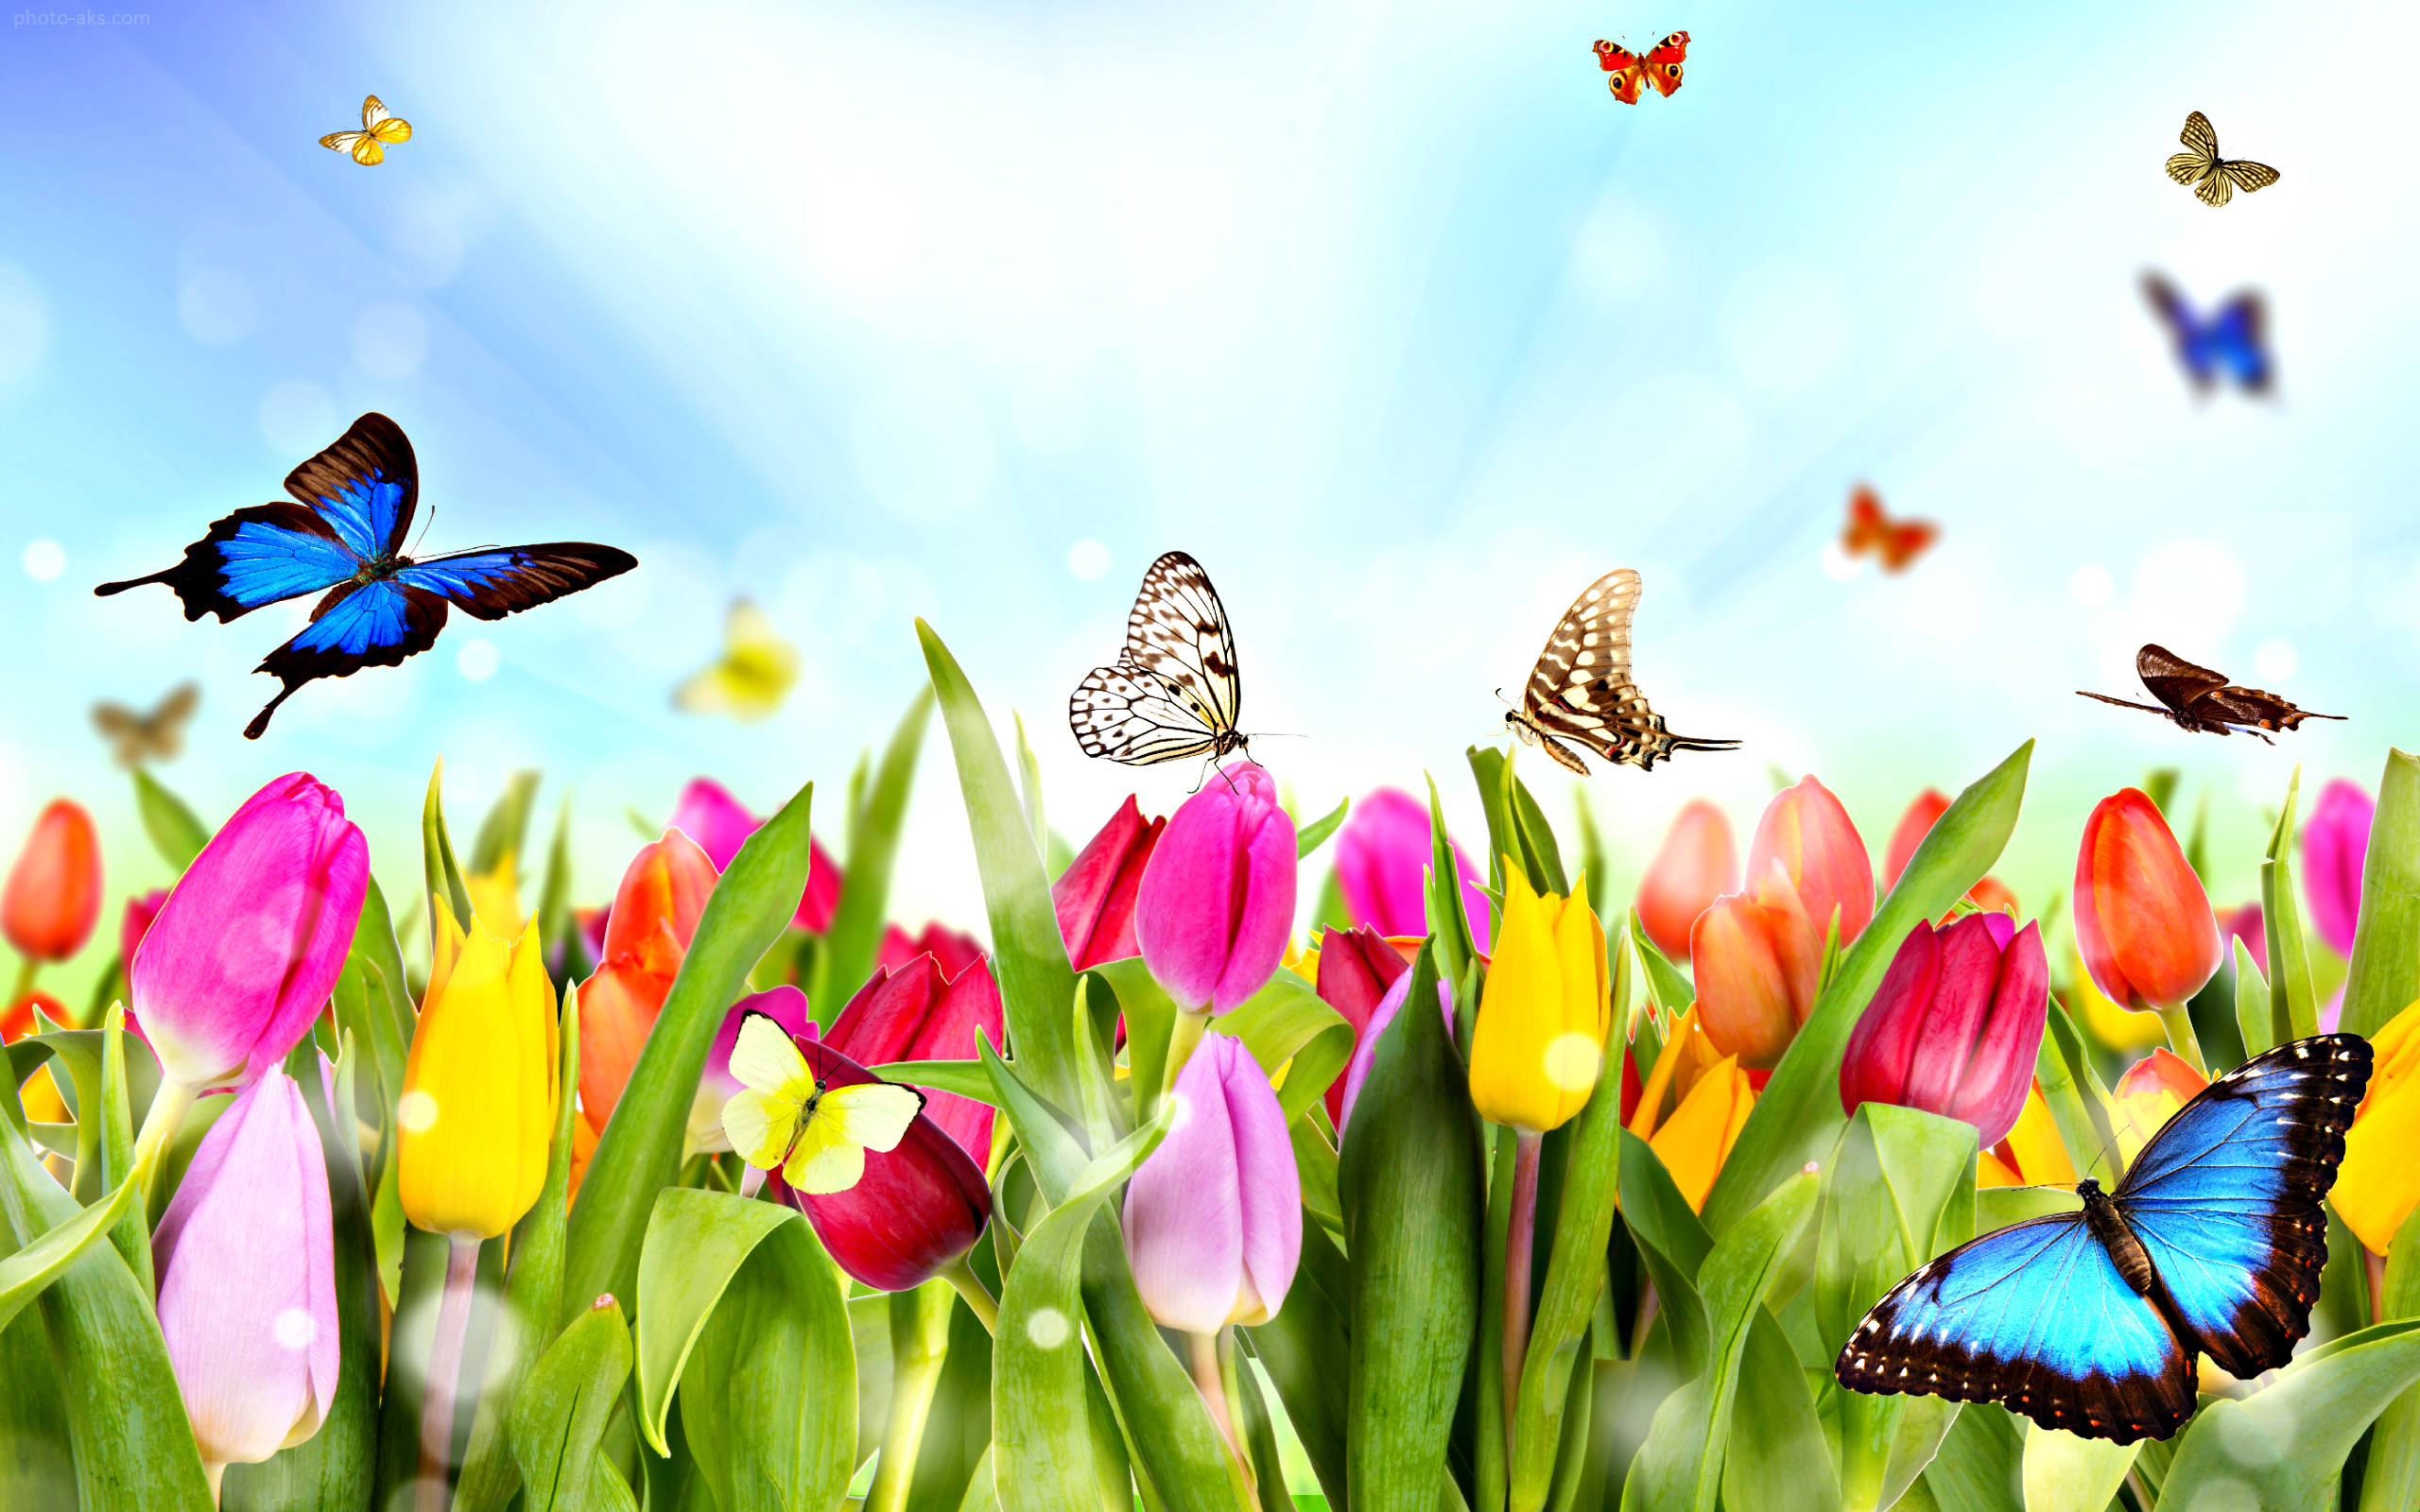 http://pic.photo-aks.com/photo/nature/season/spring/large/spring_wallpaper.jpg